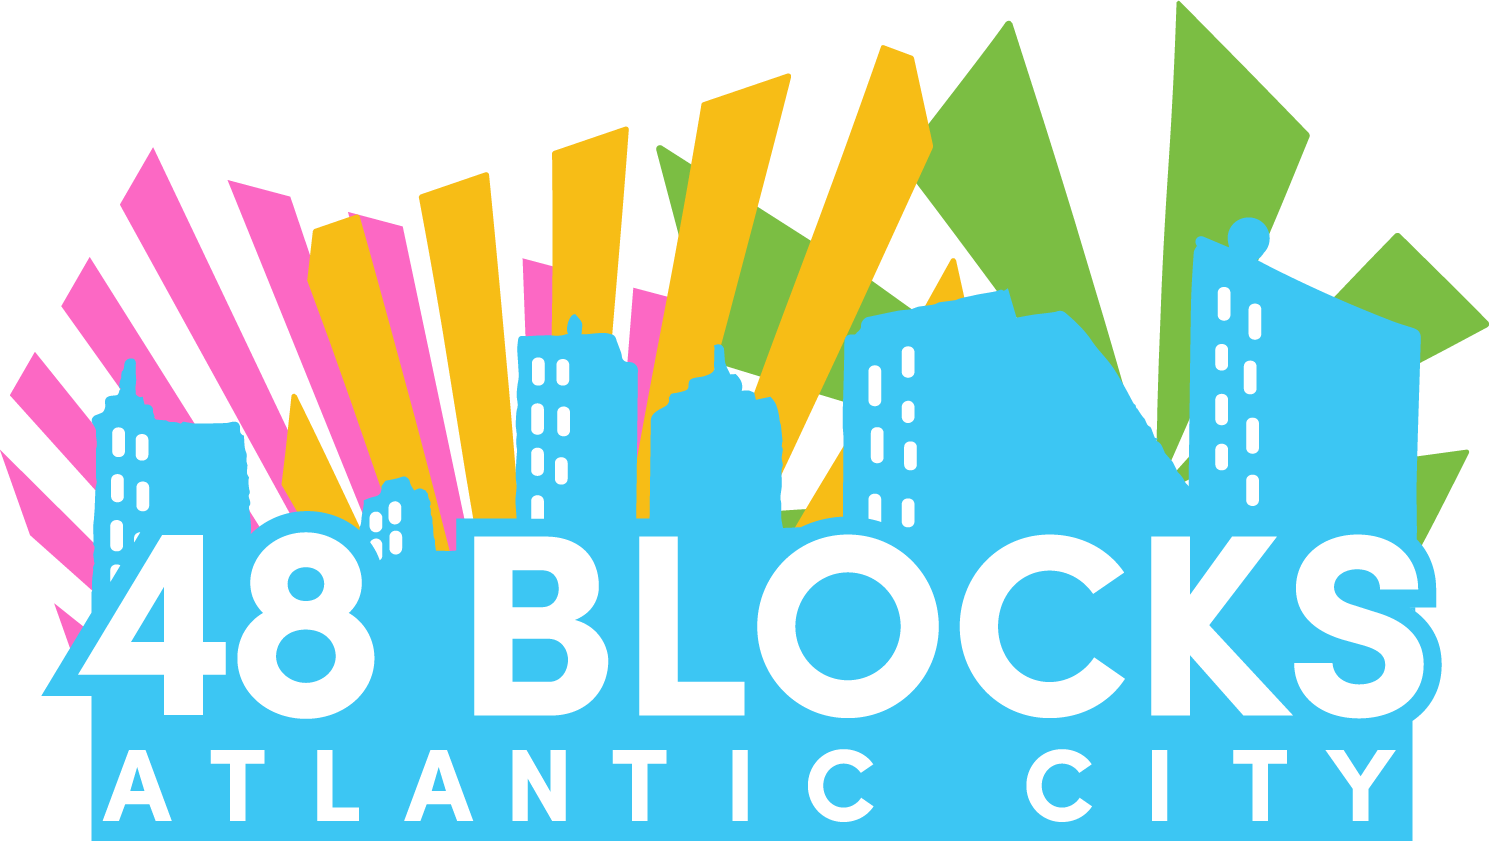 48 Blocks Atlantic City